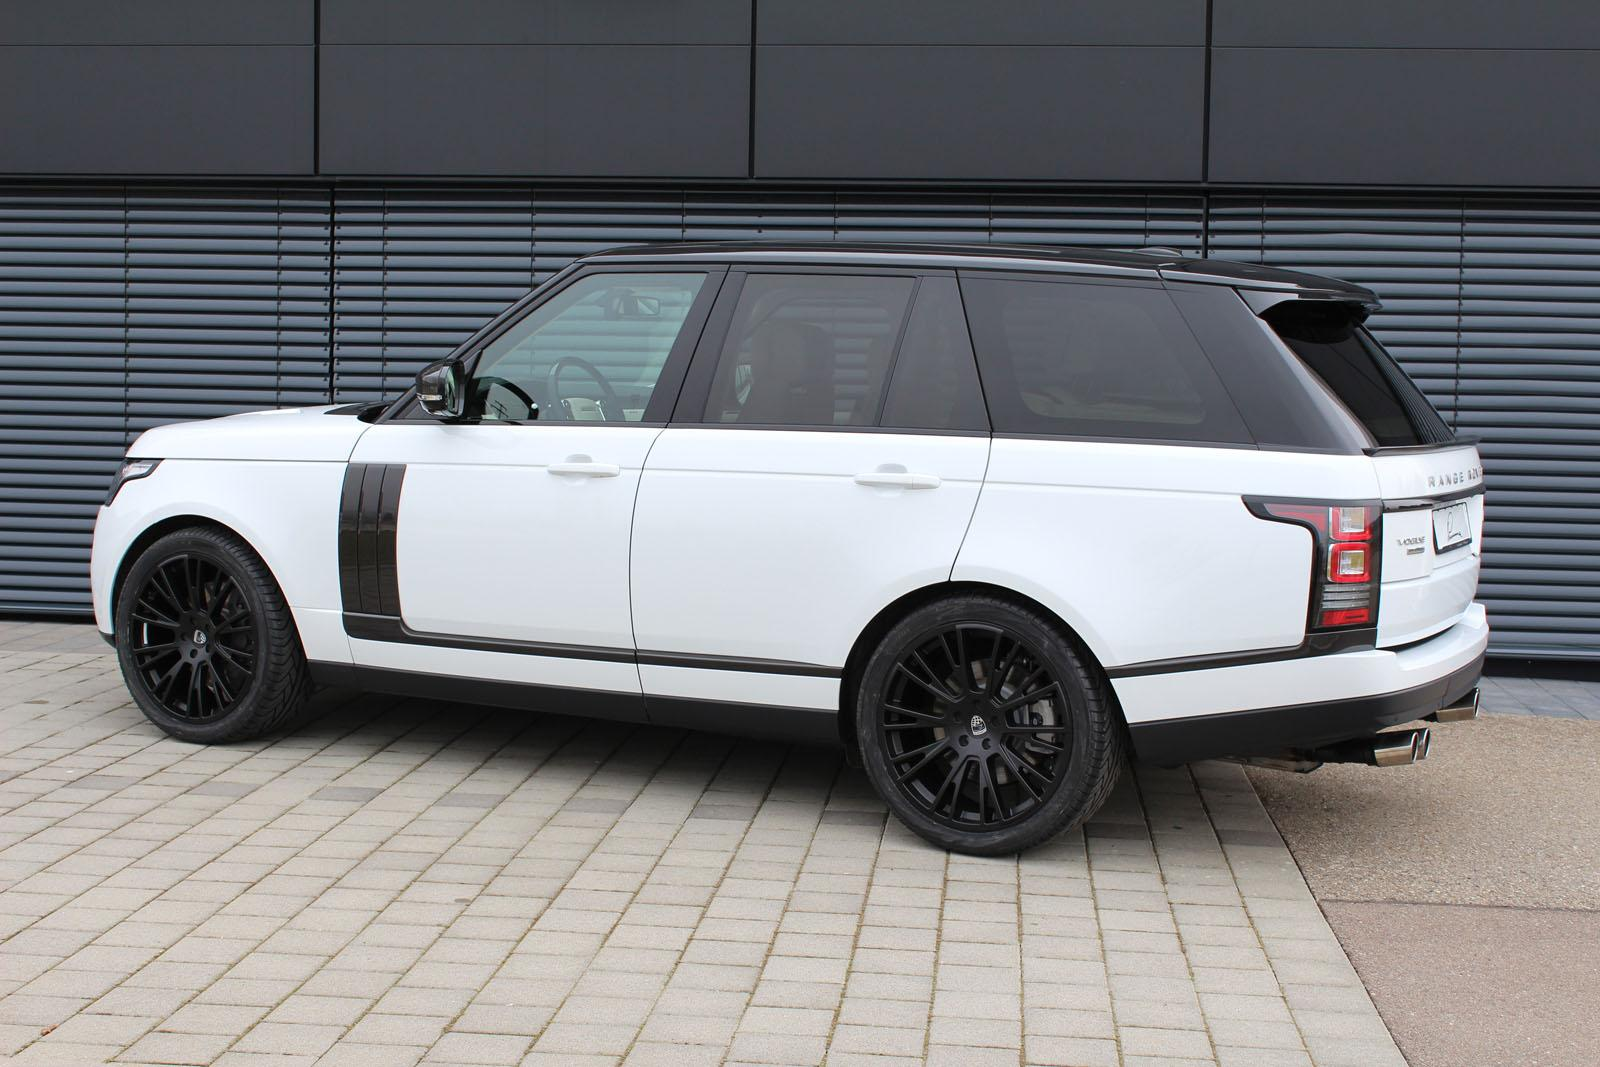 lumma design improves new range rover with carbon fiber. Black Bedroom Furniture Sets. Home Design Ideas